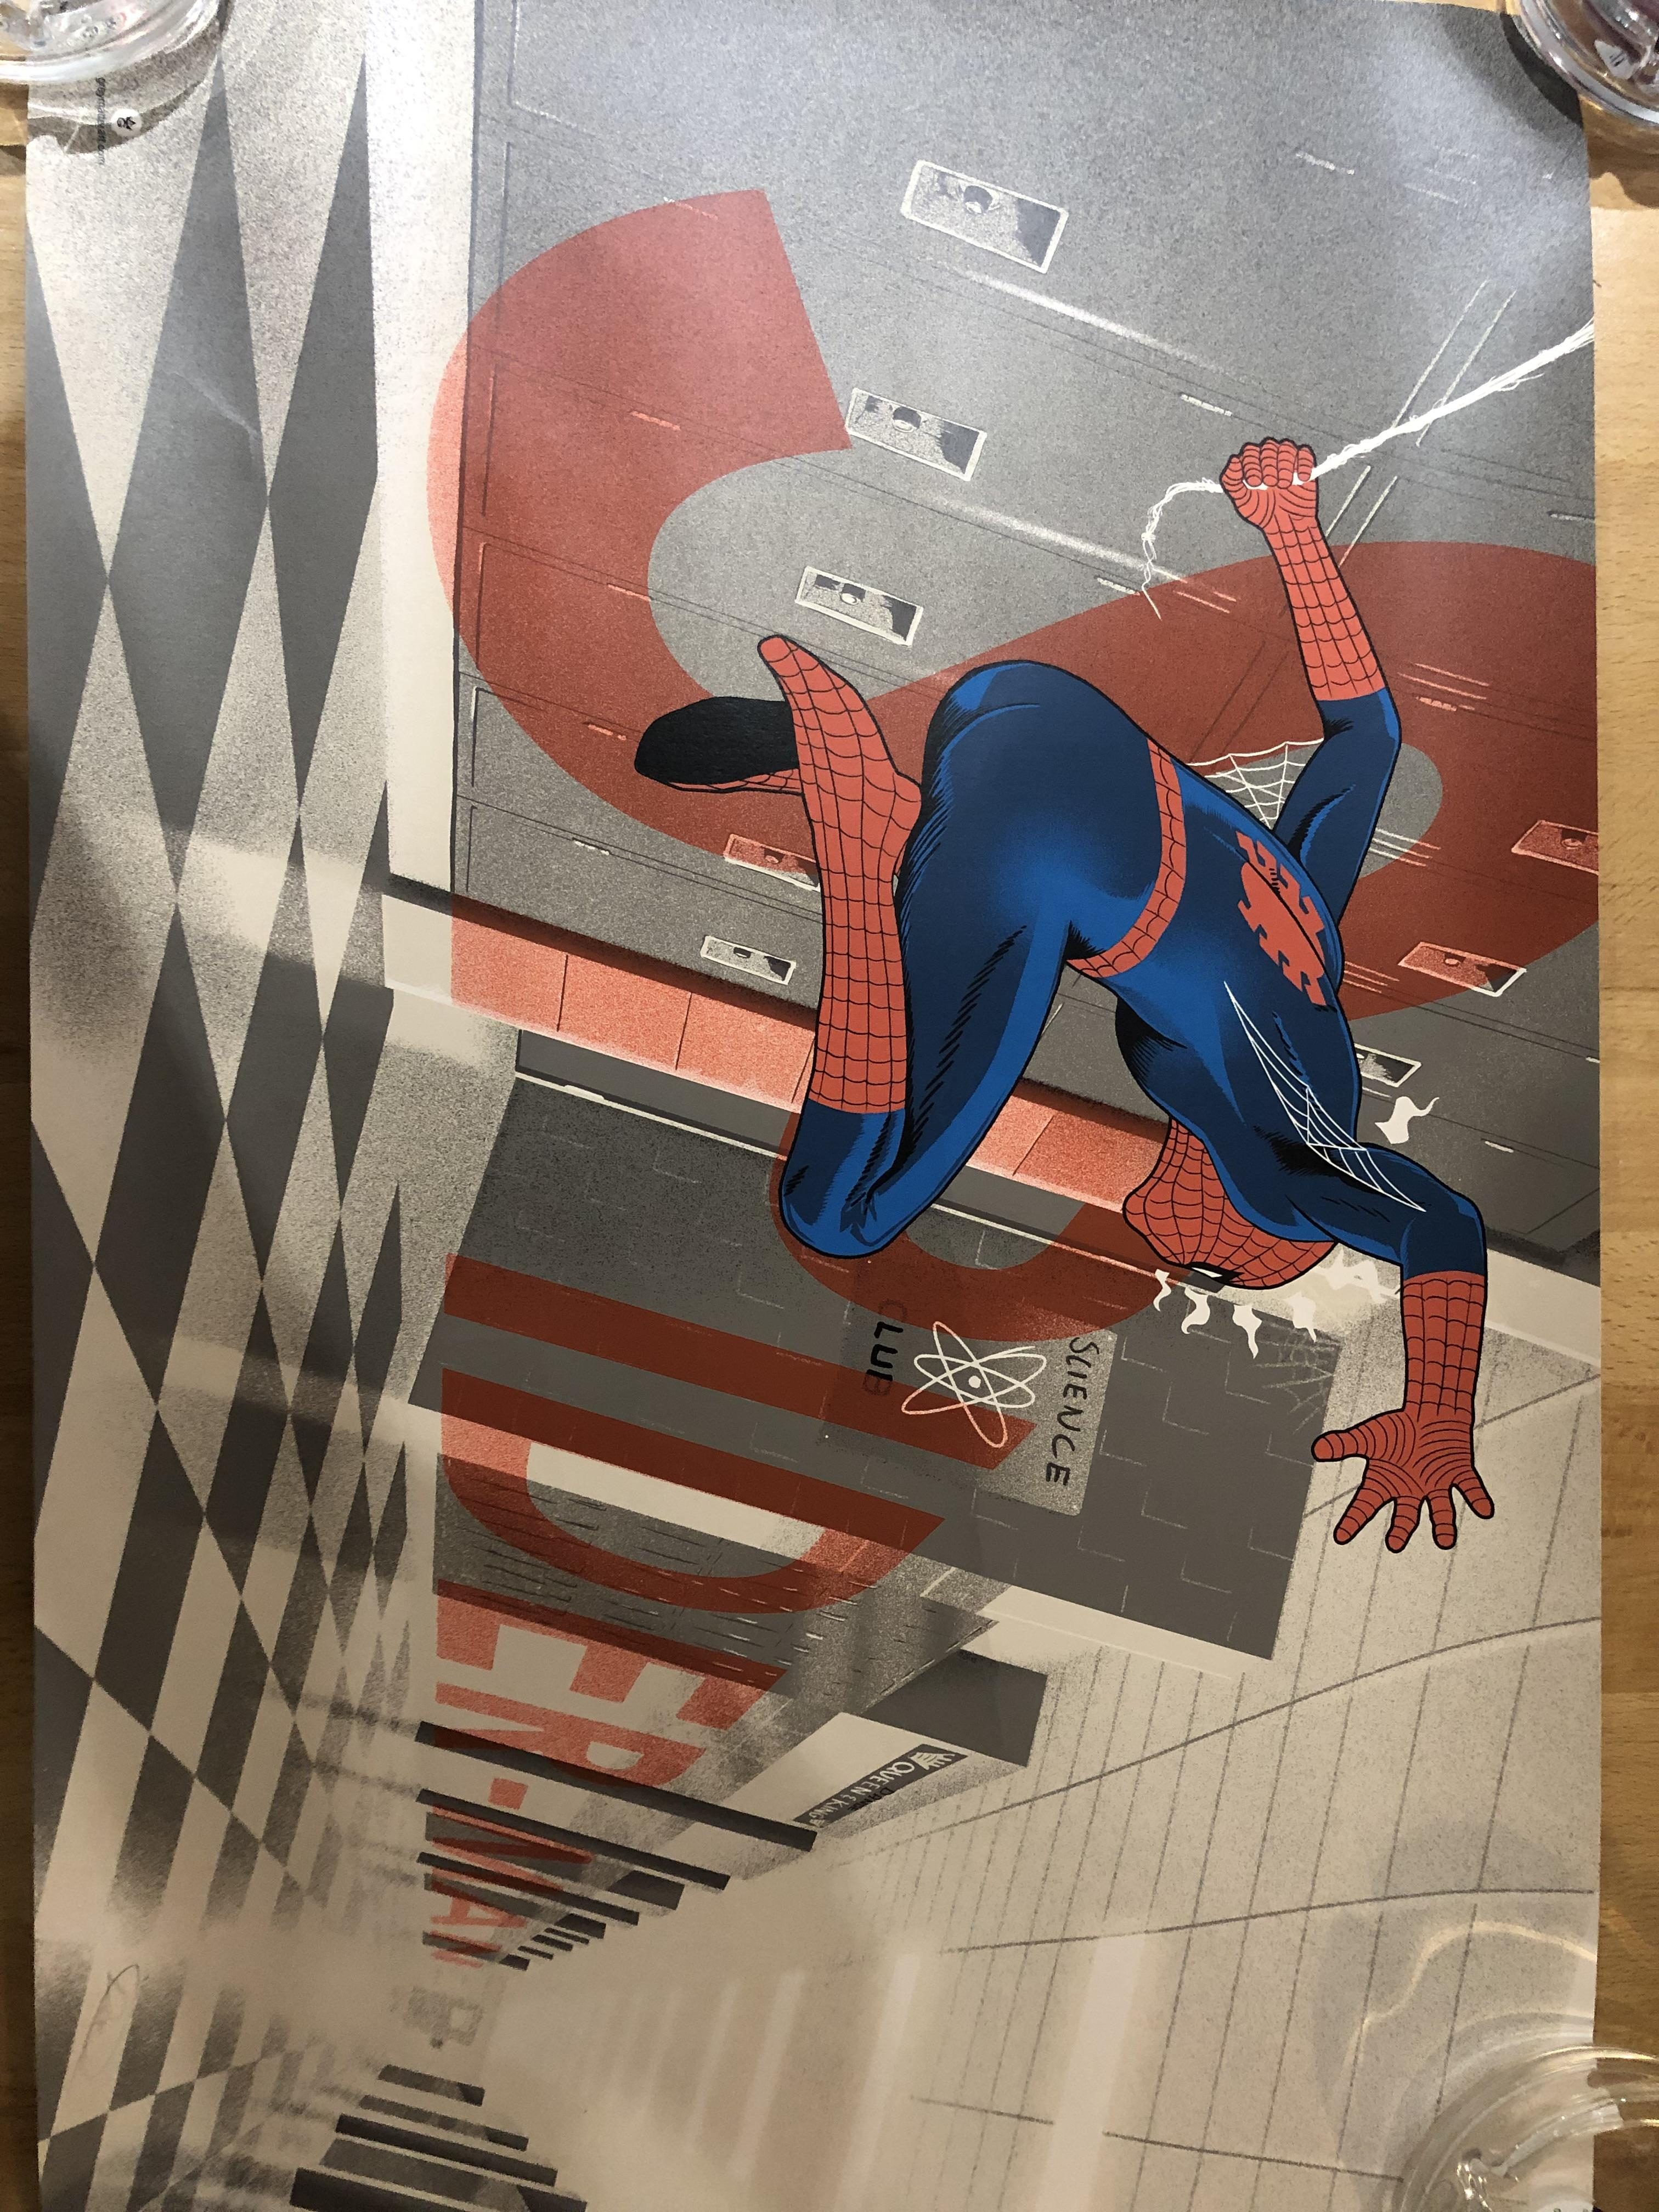 Lot 36 - Doaly Spiderman signed print